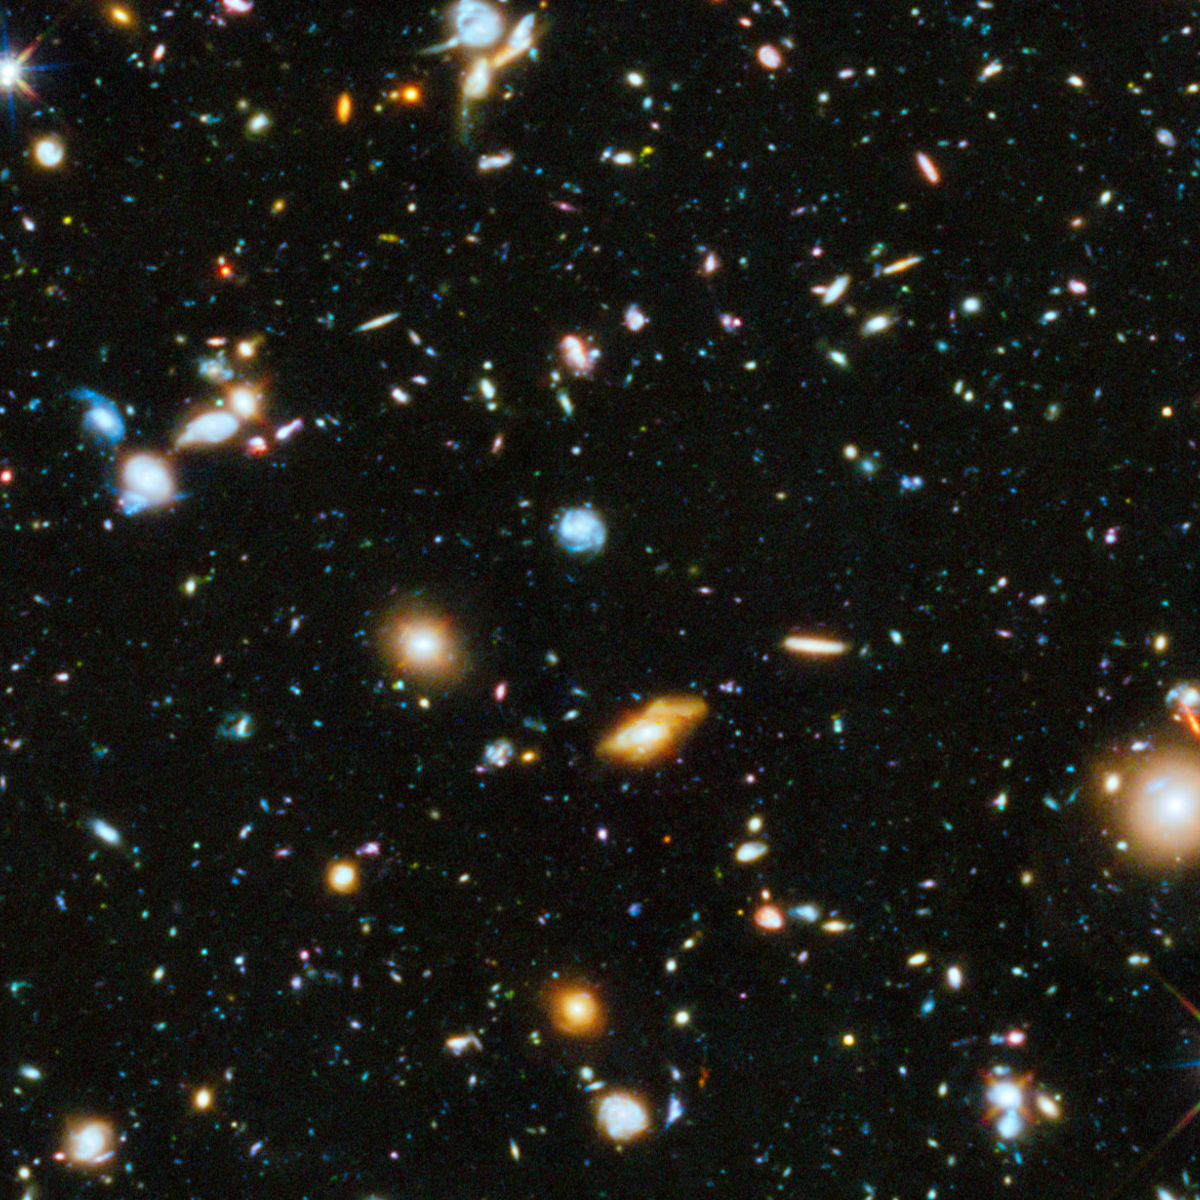 This is the Hubble Ultra Deep Field, and almost everything you see in it is a distant galaxy, billions of light years away. Credit: NASA, ESA, H. Teplitz and M. Rafelski (IPAC/Caltech), A. Koekemoer (STScI), R. Windhorst (Arizona State University), and Z.